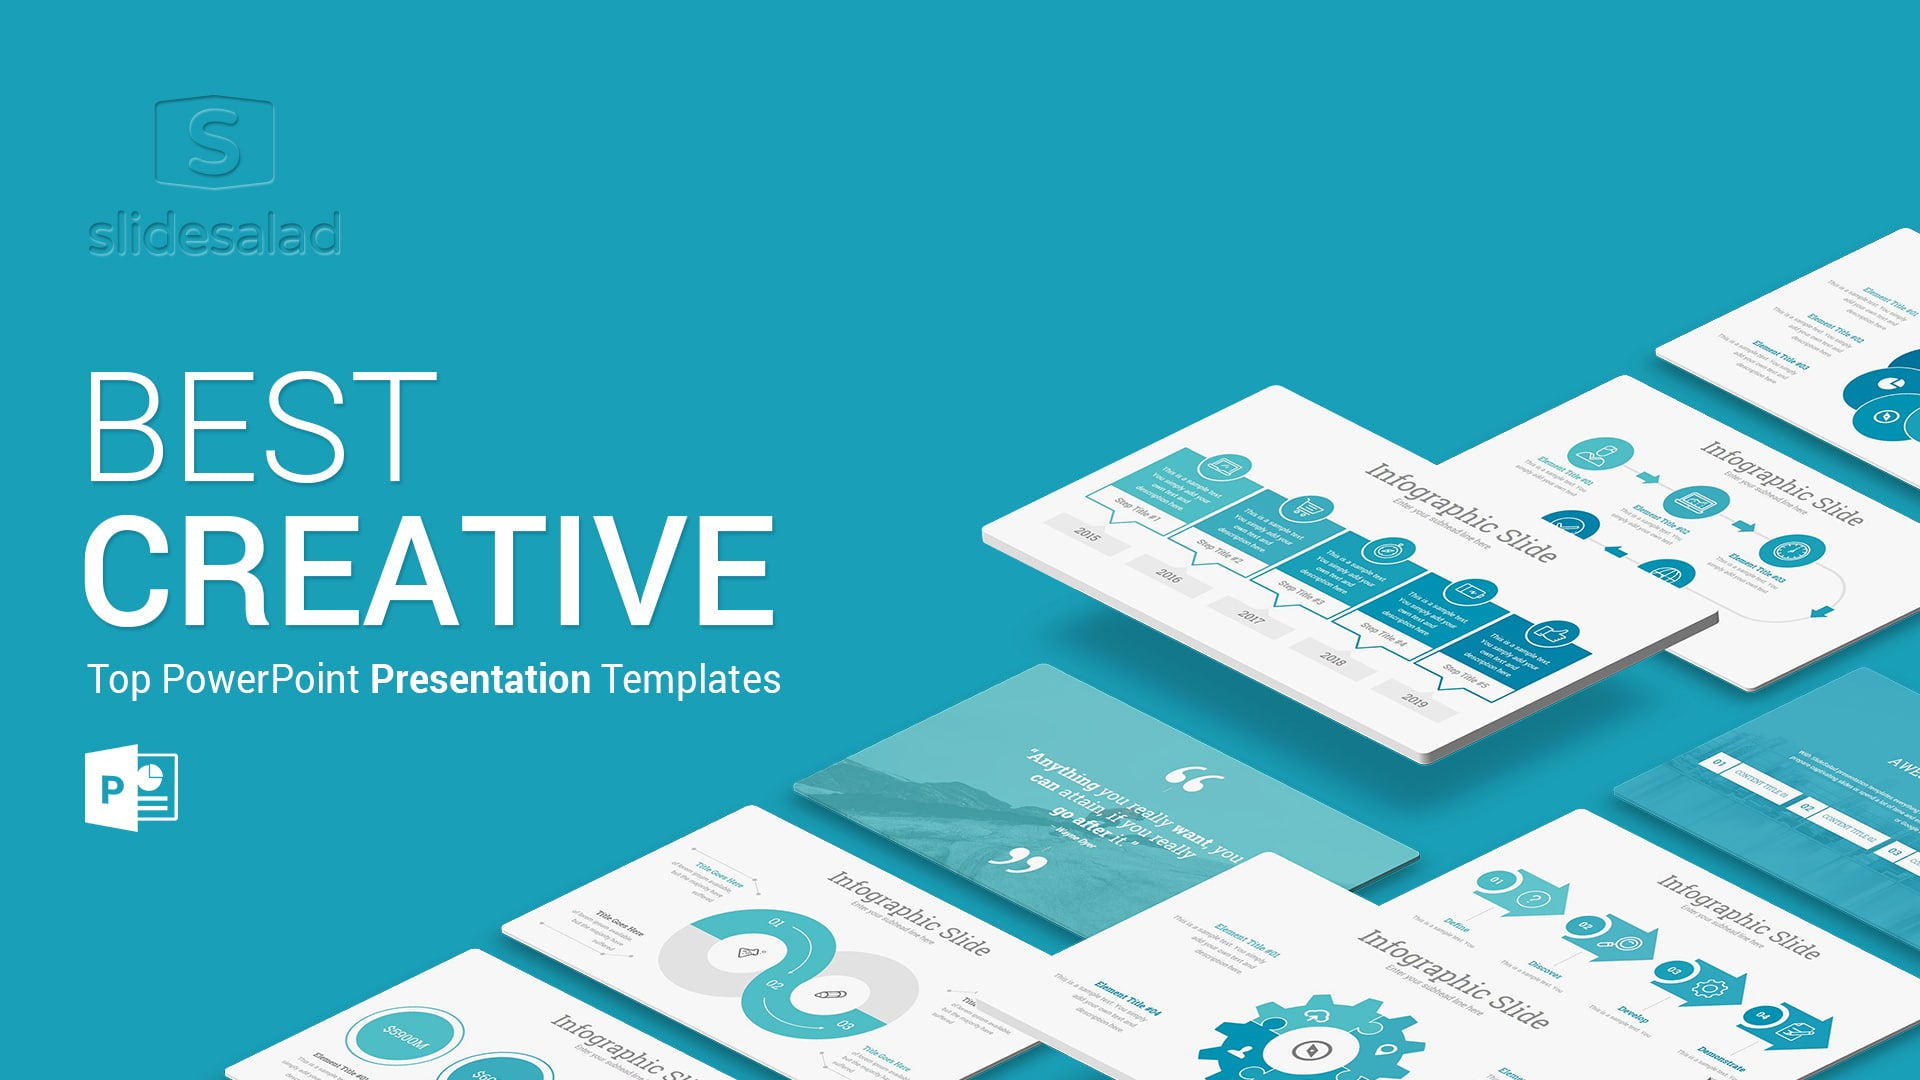 Creative - A PowerPoint Presentation Template for Creative Businesses